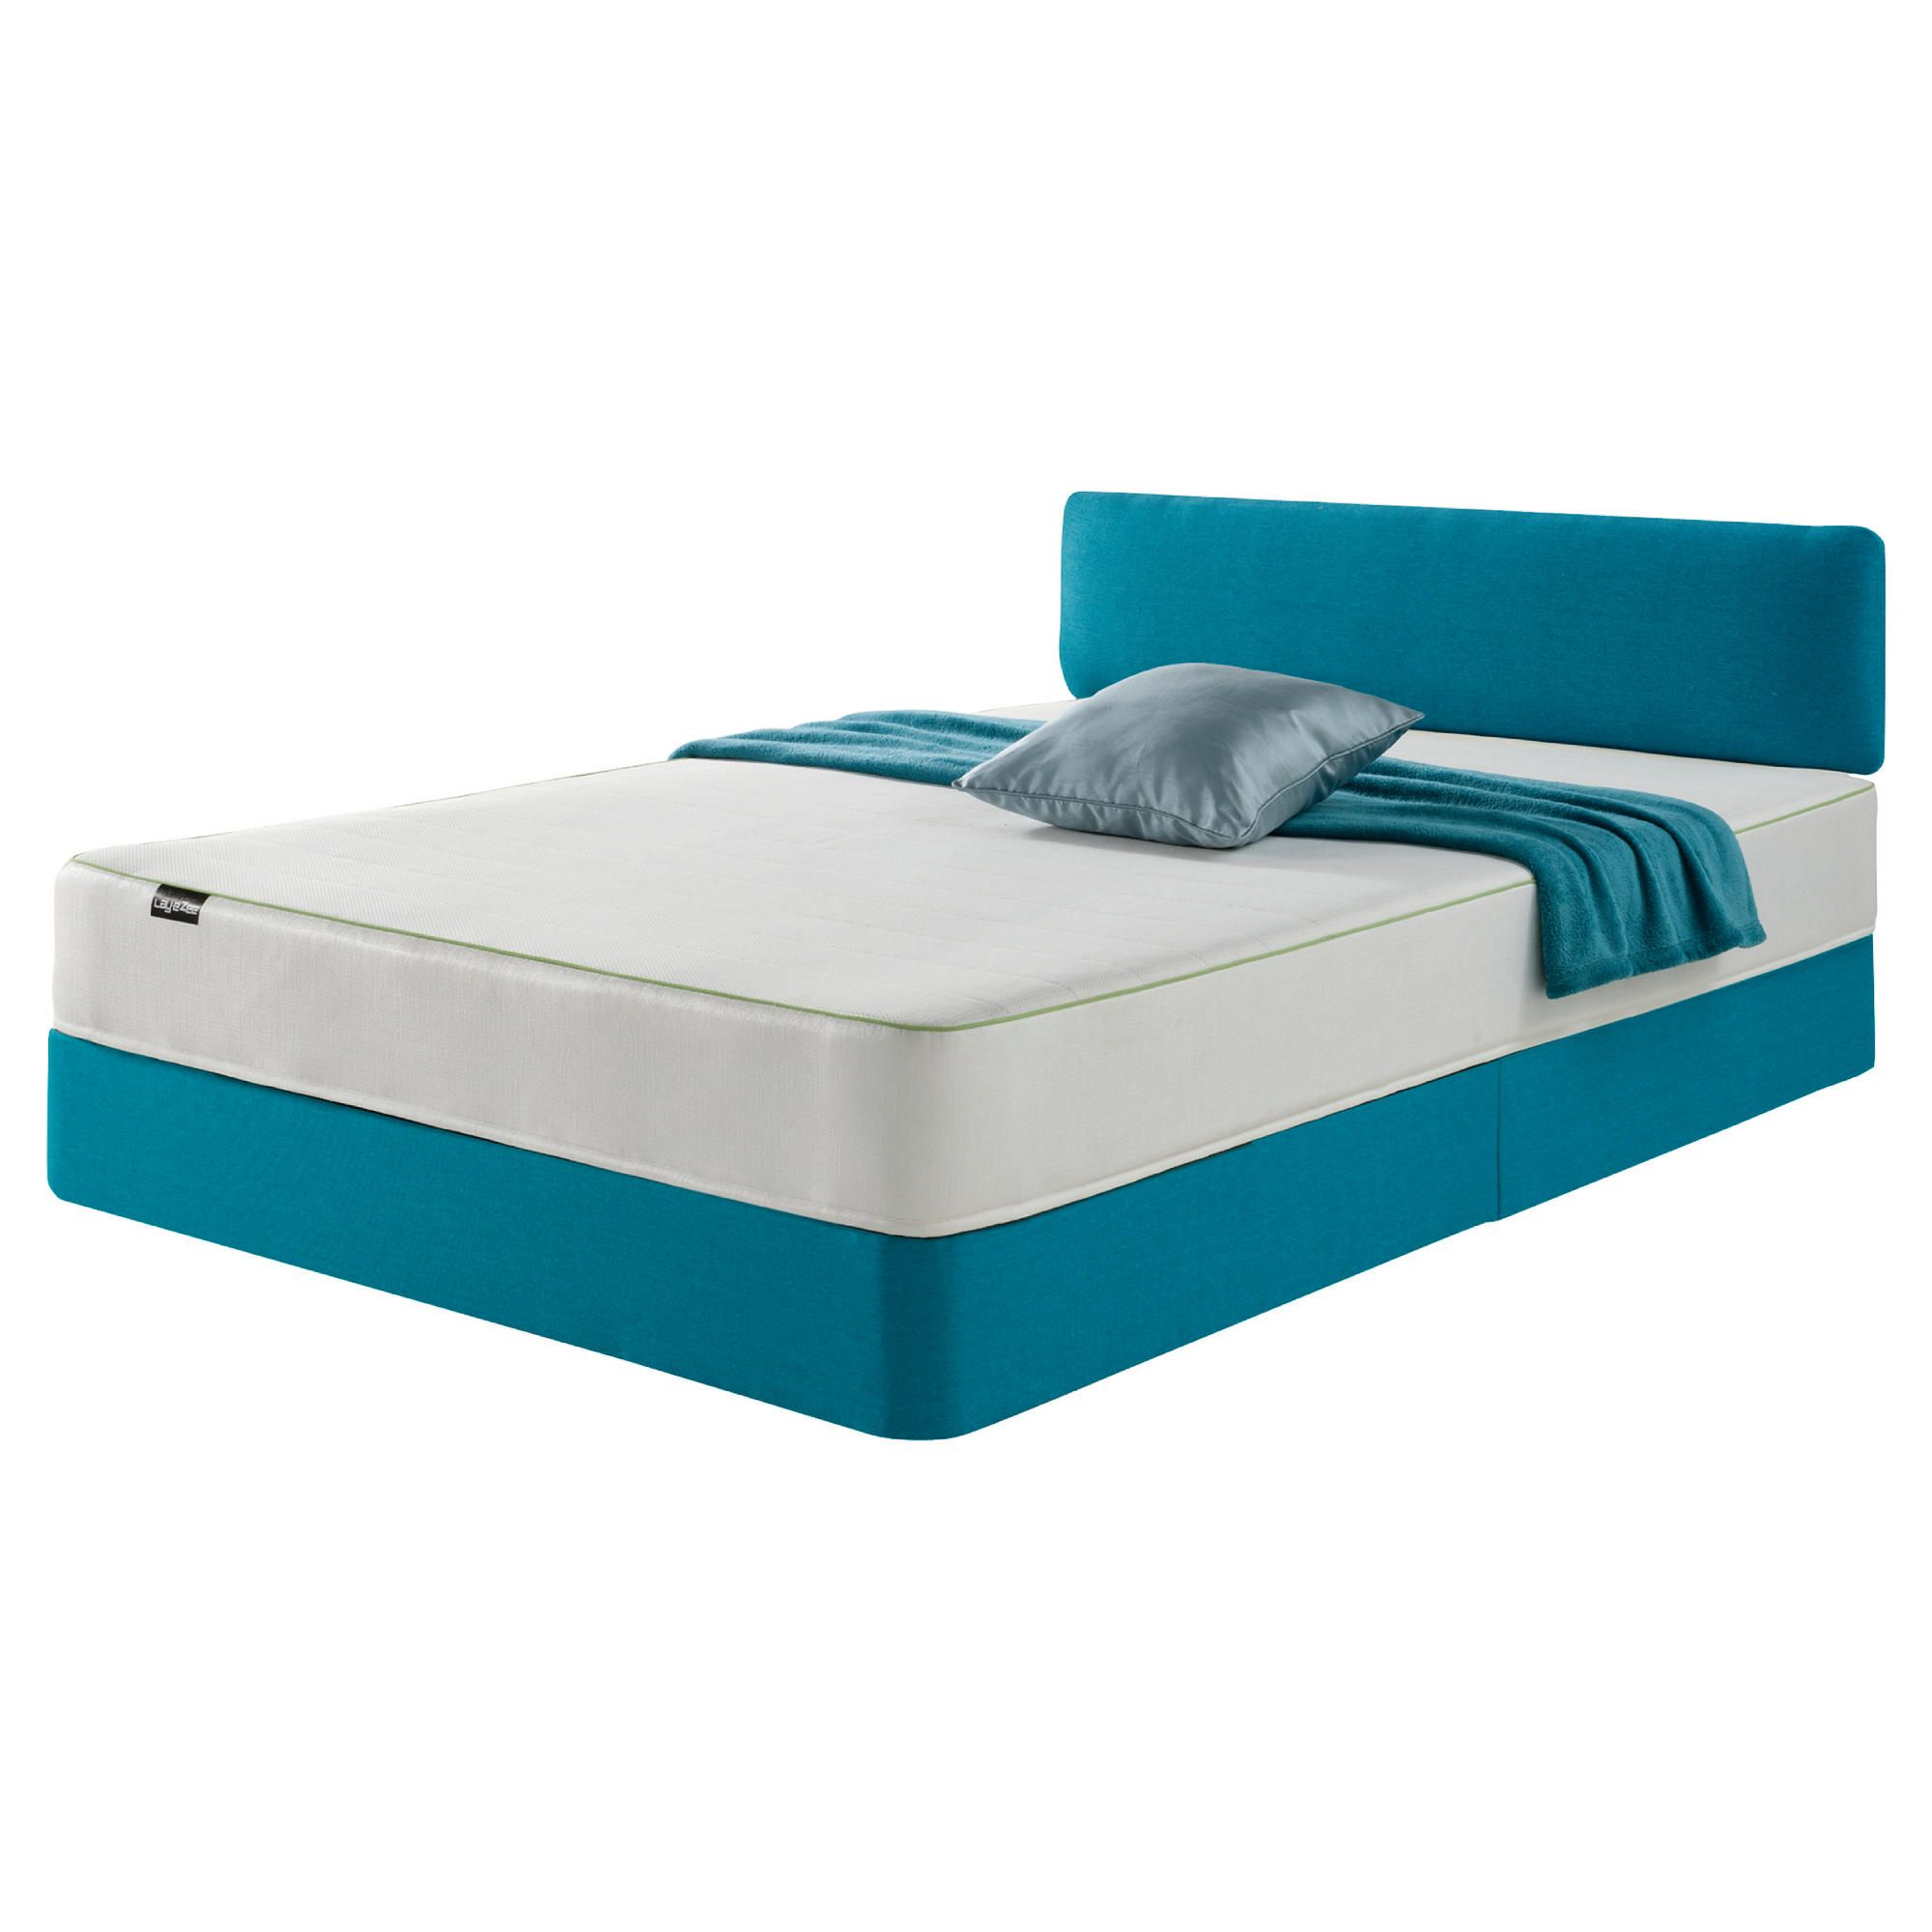 Layezee Teal Bed and Headboard Standard Mattress Single at Tesco Direct